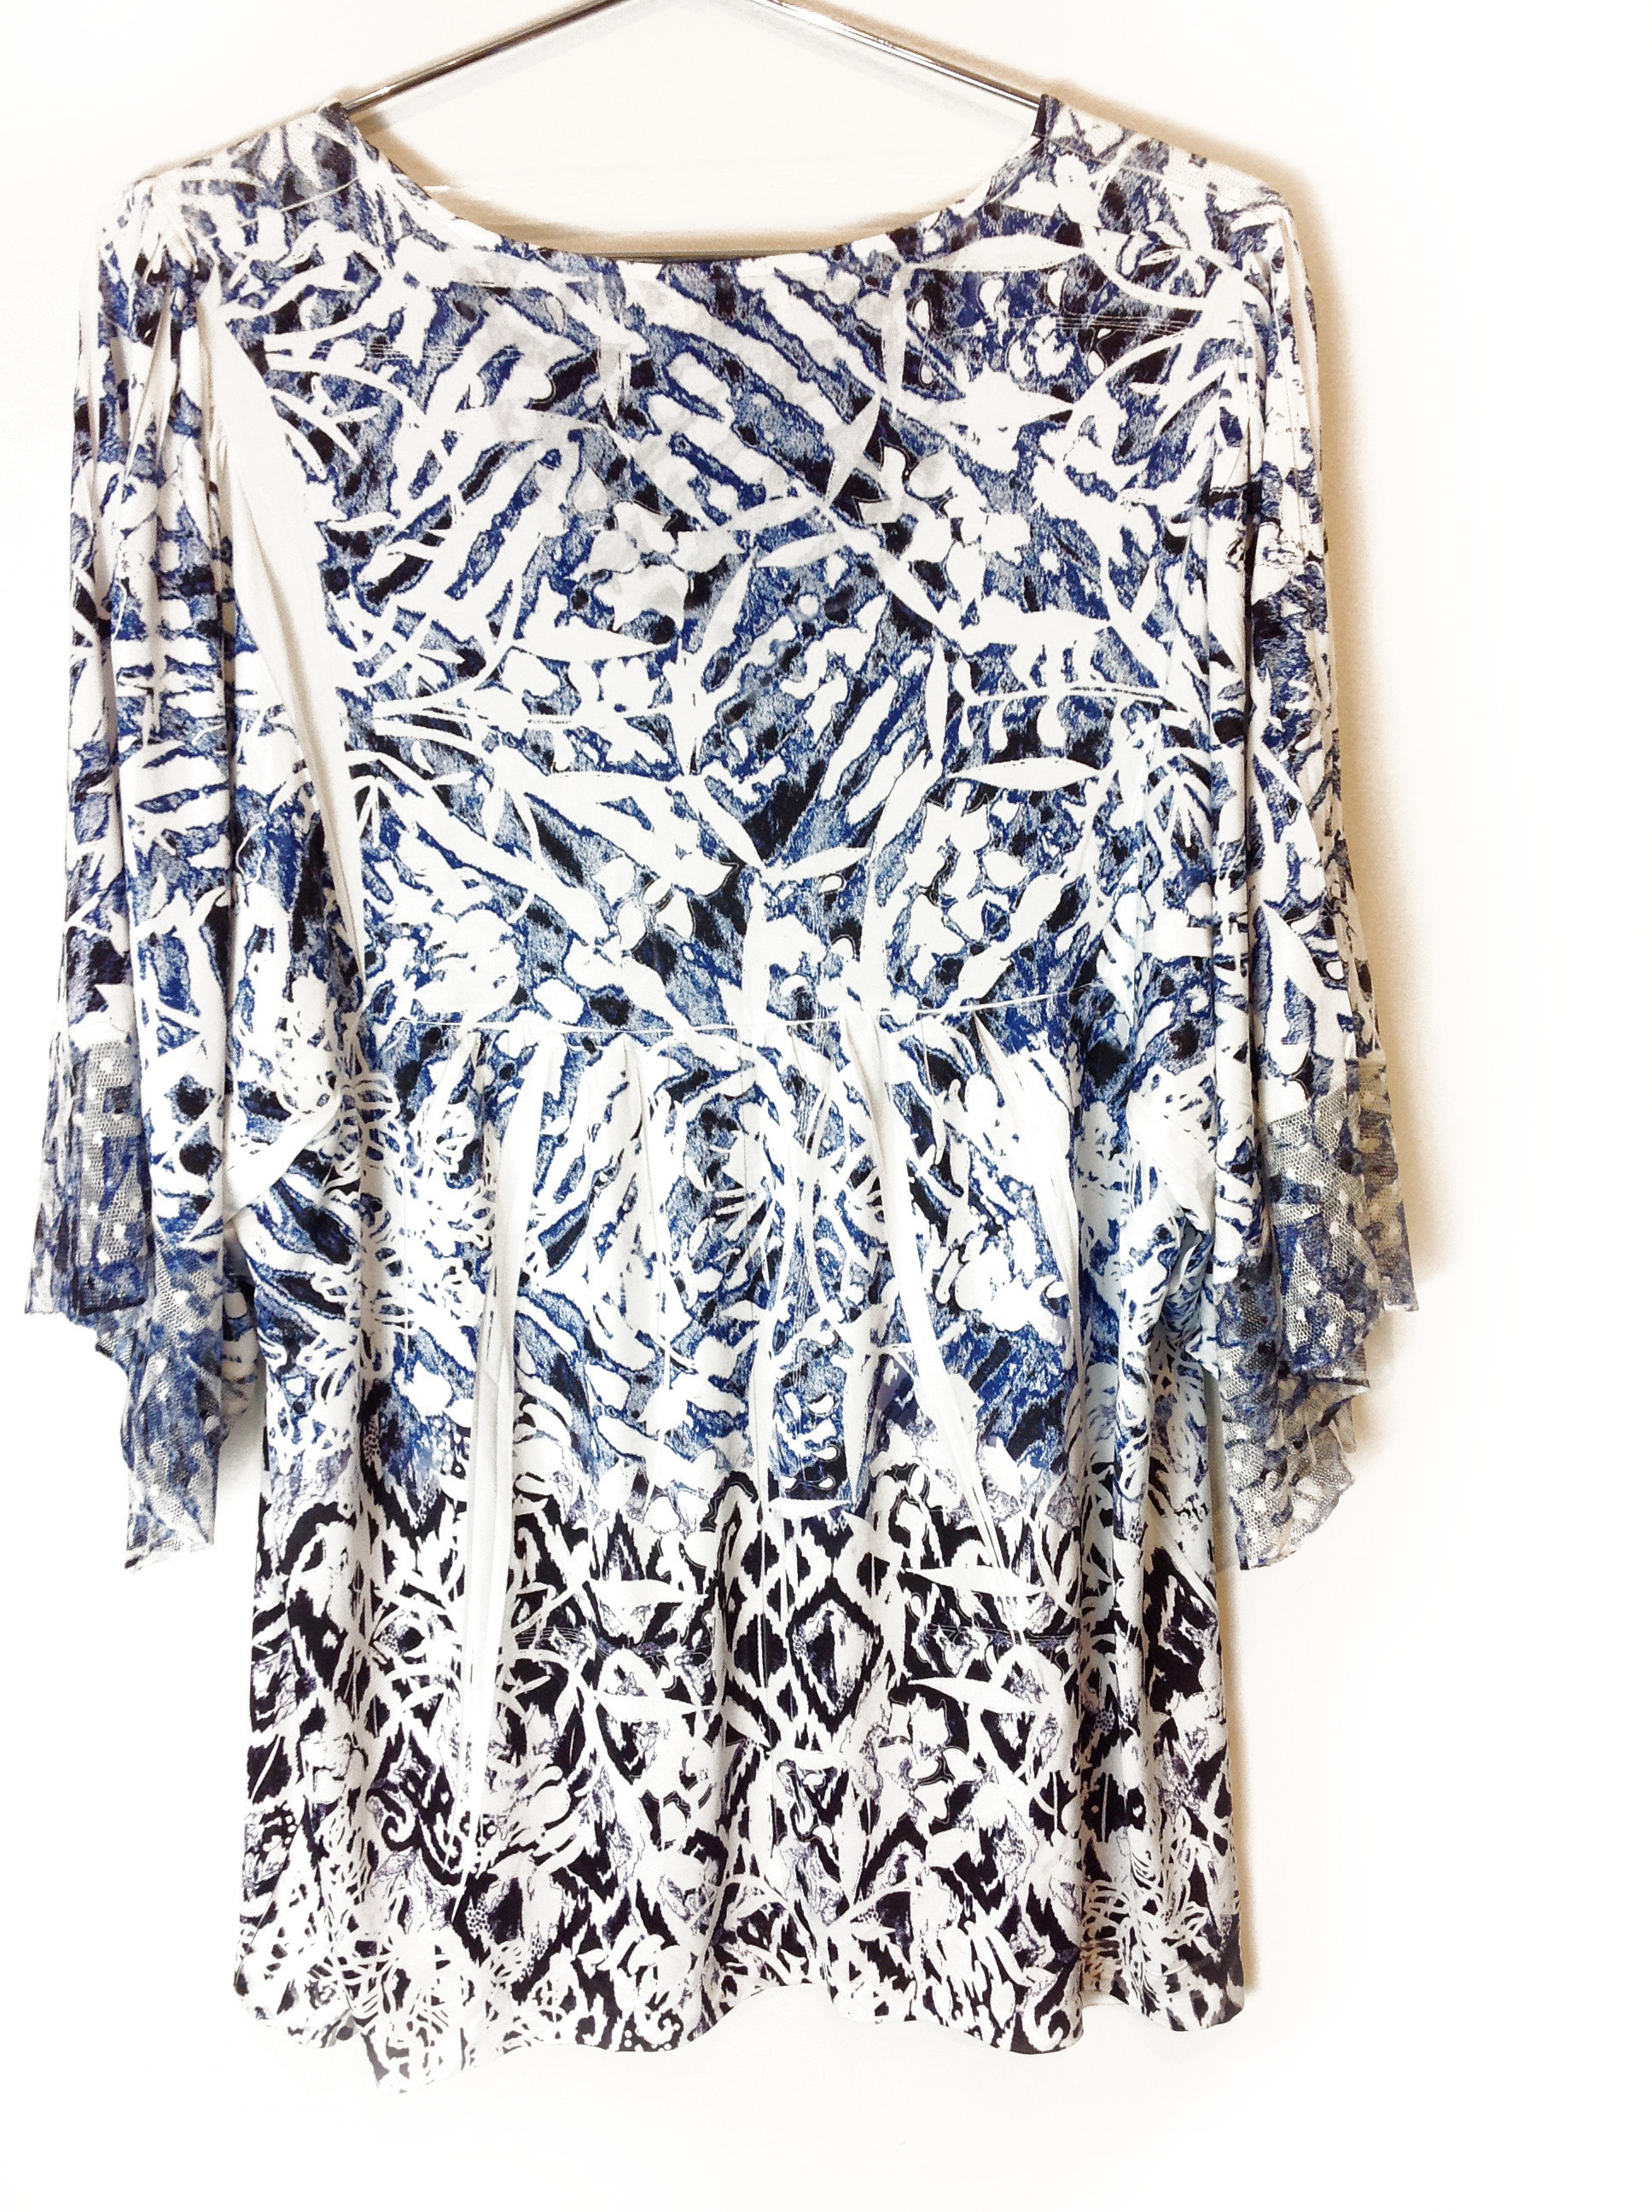 New-One-World-Womens-Printed-Knit-3-4-Ruffle-Elbow-Pleated-Blouse-Top-1x-54 thumbnail 3